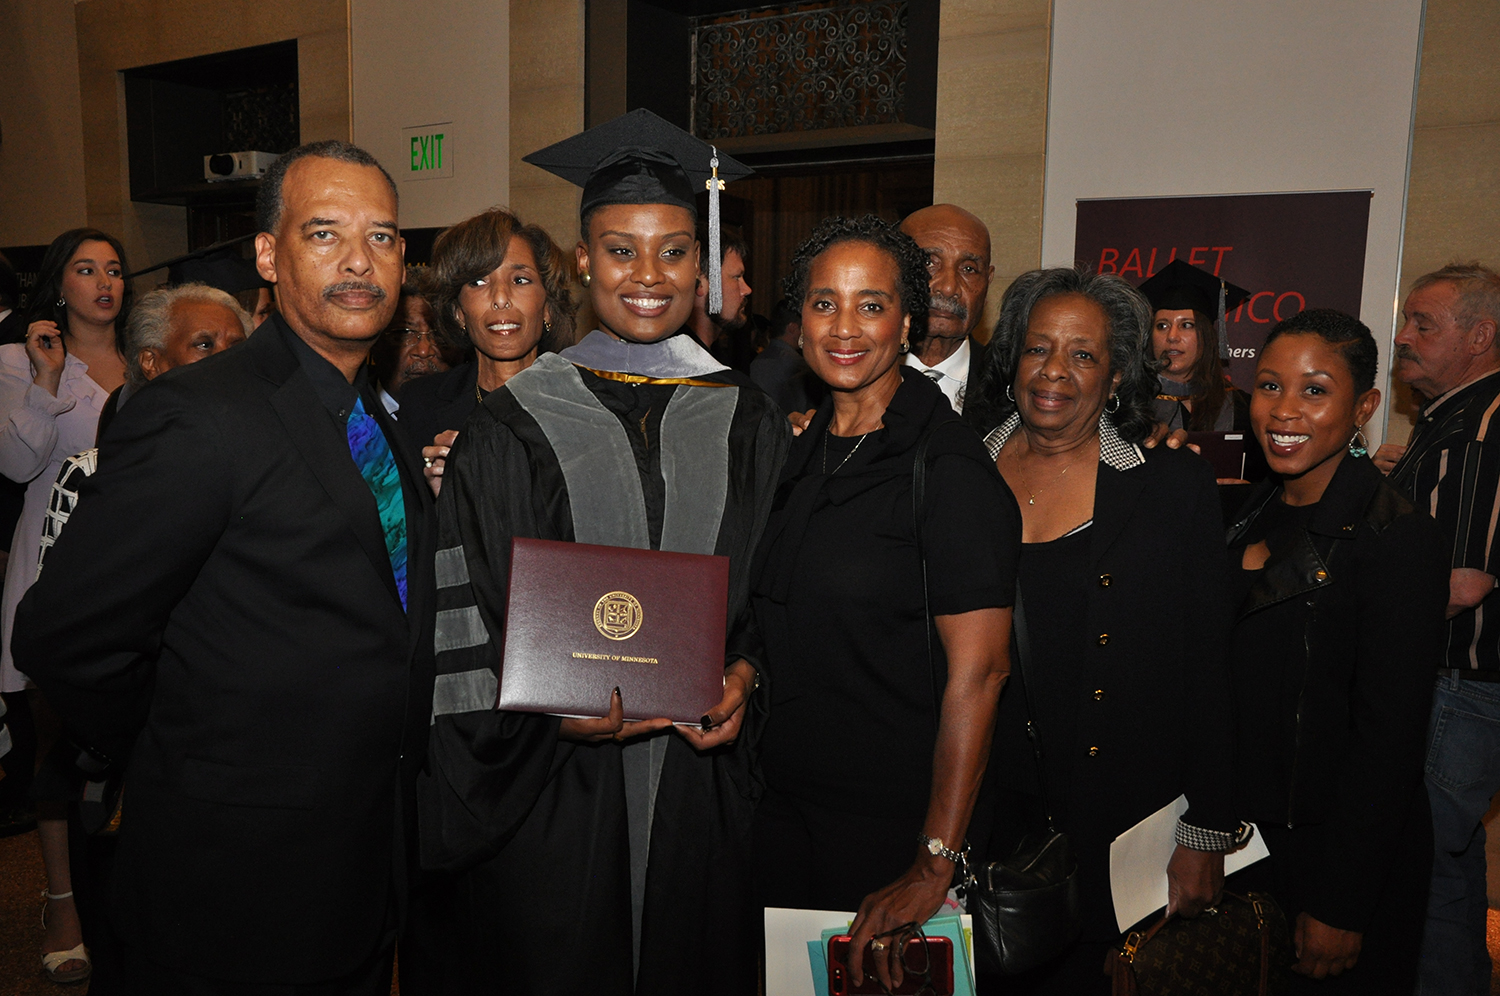 miranda shaw and her family at commencement